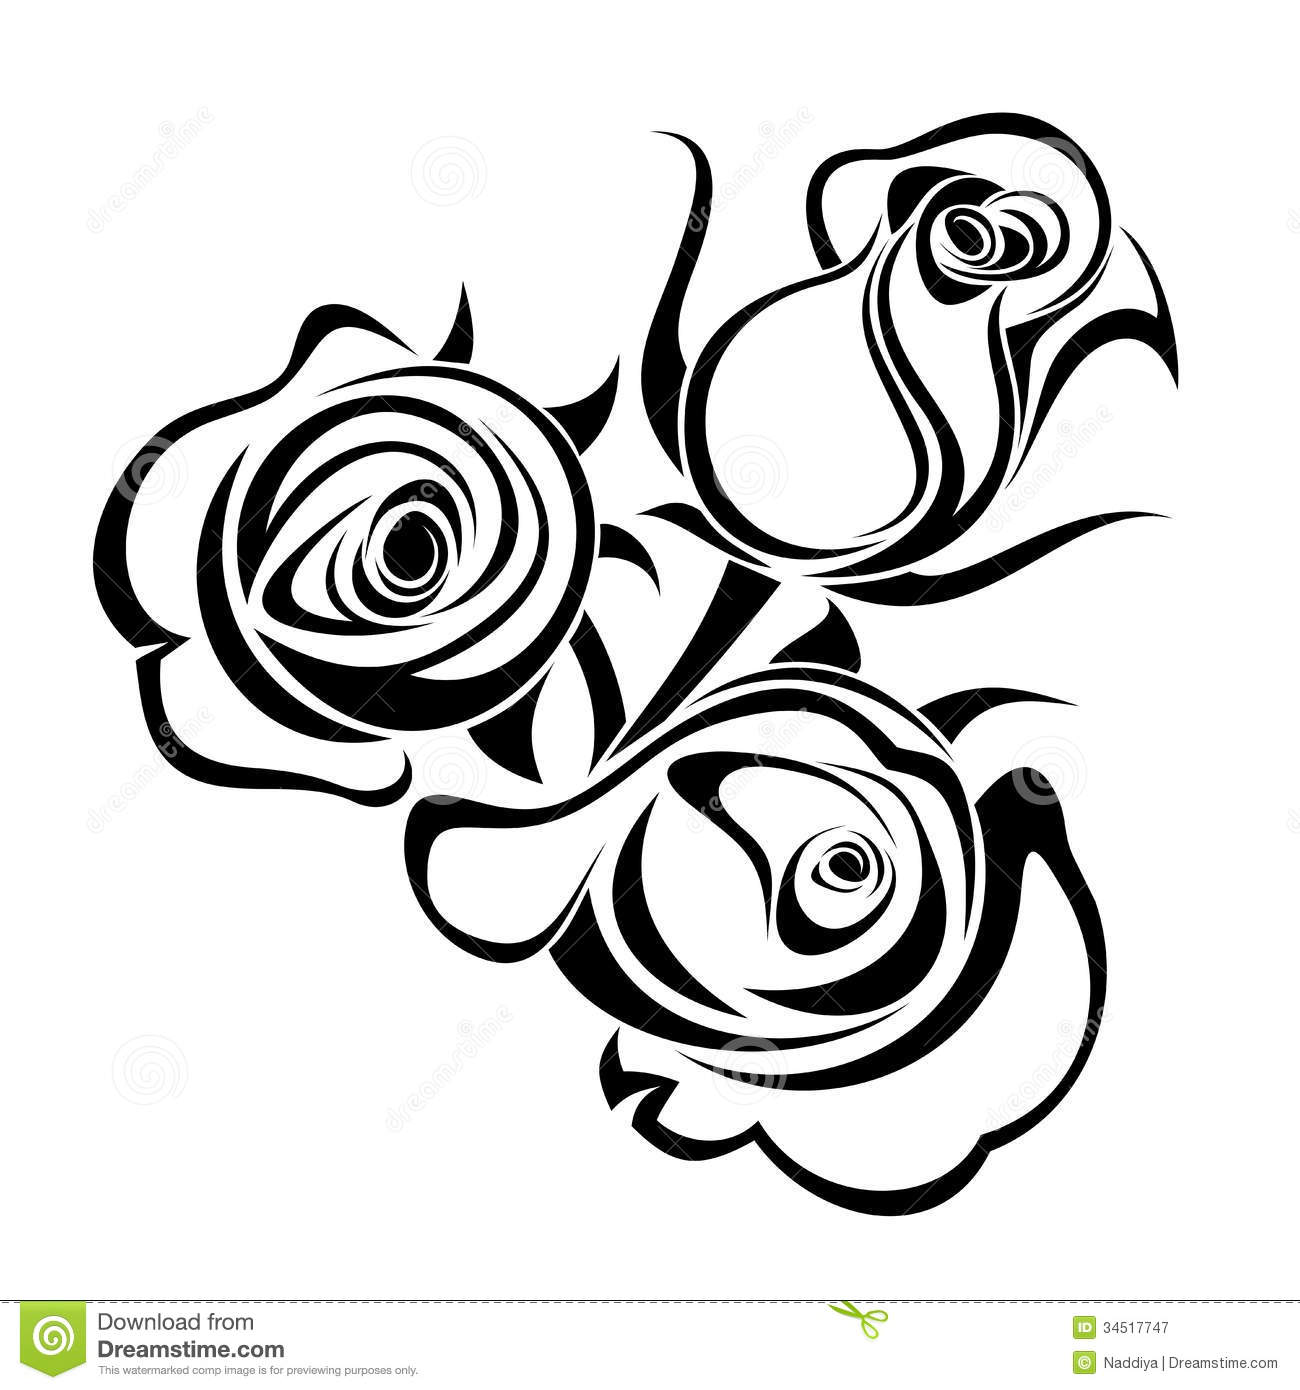 Rose Bouquet Clip Art Black And White Rose Buds Black Silhouettes